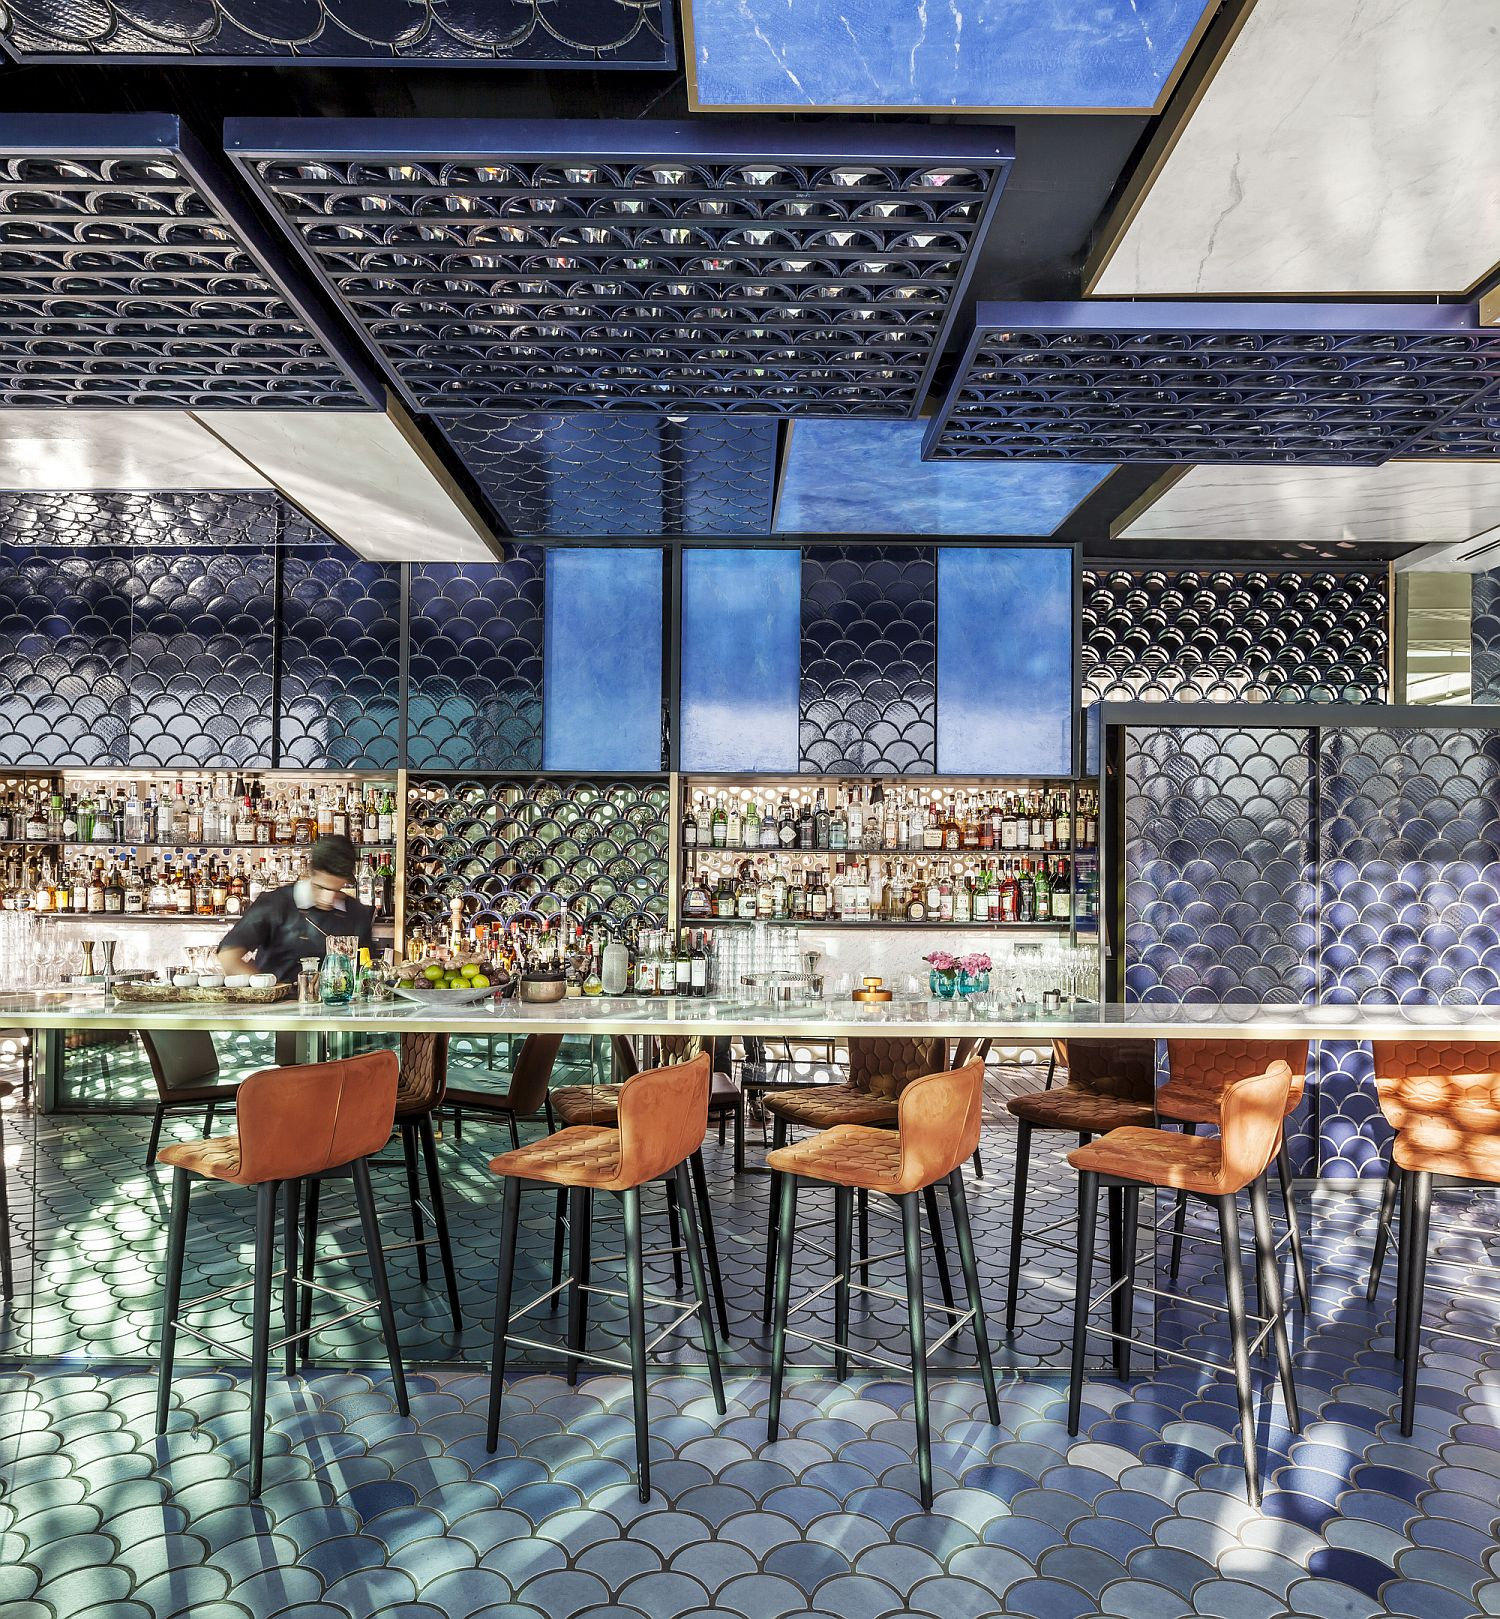 Hanging bar and reflective elements create a beautiful and breezy atmosphere